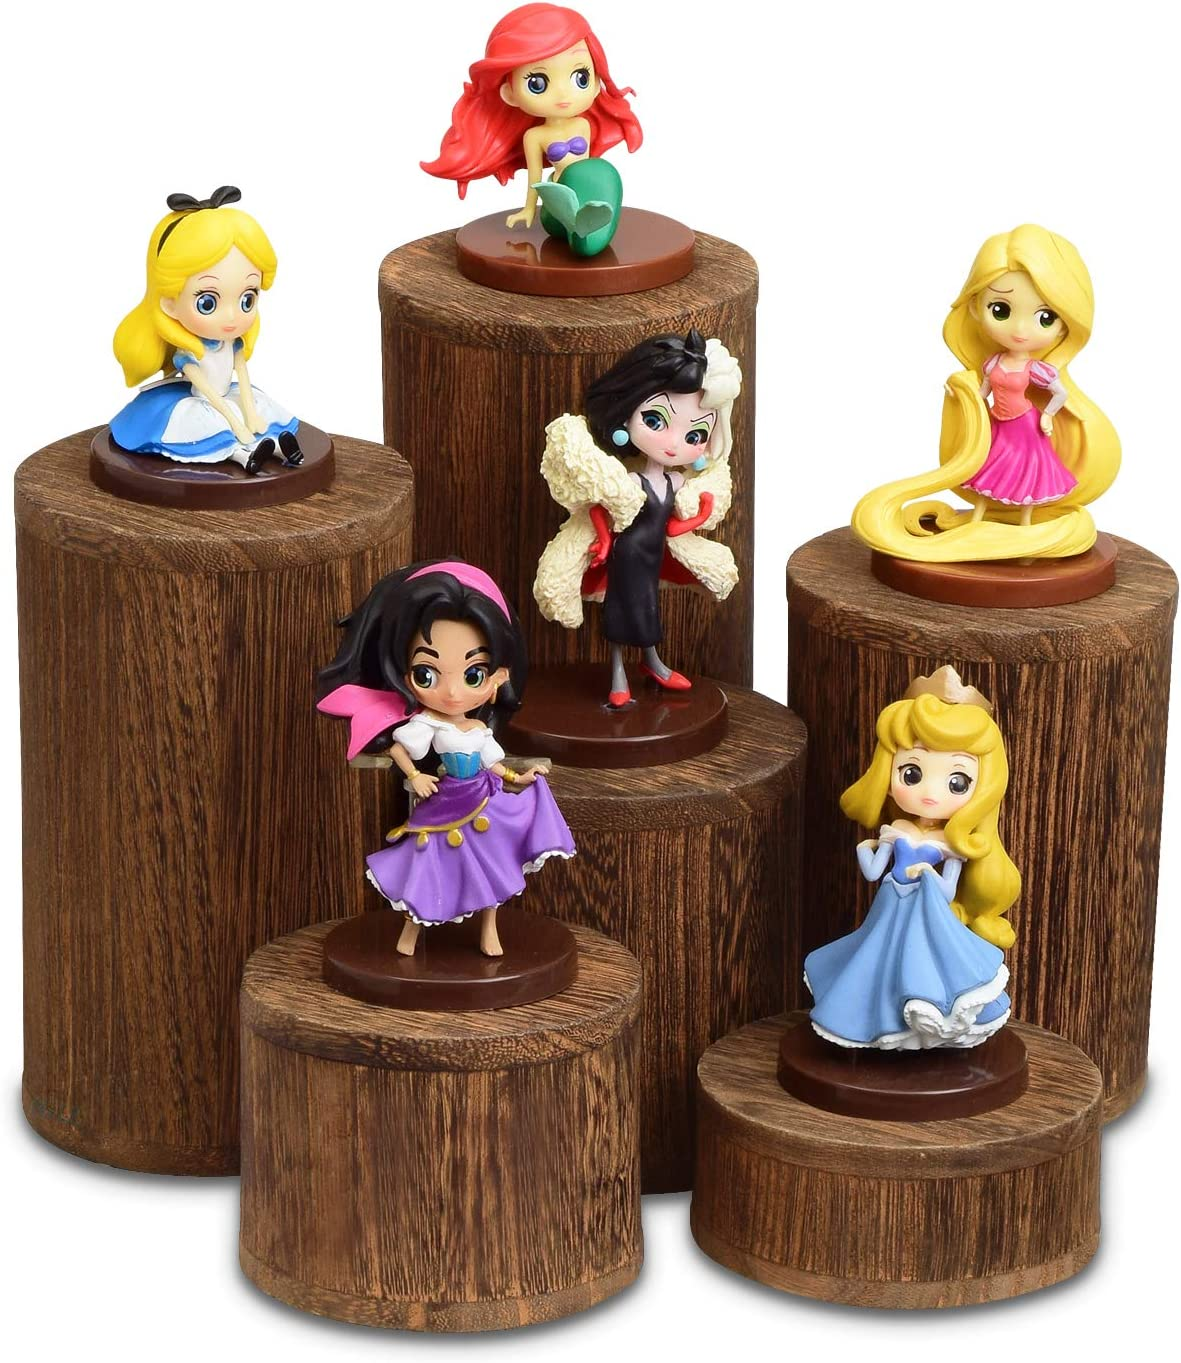 Mooca Wooden 6 Pcs Round Risers for Display Jewelry and Accessories Display Stand Wooden Display Risers, Wood Jewelry Risers Wood Figurine Display Risers, Brown